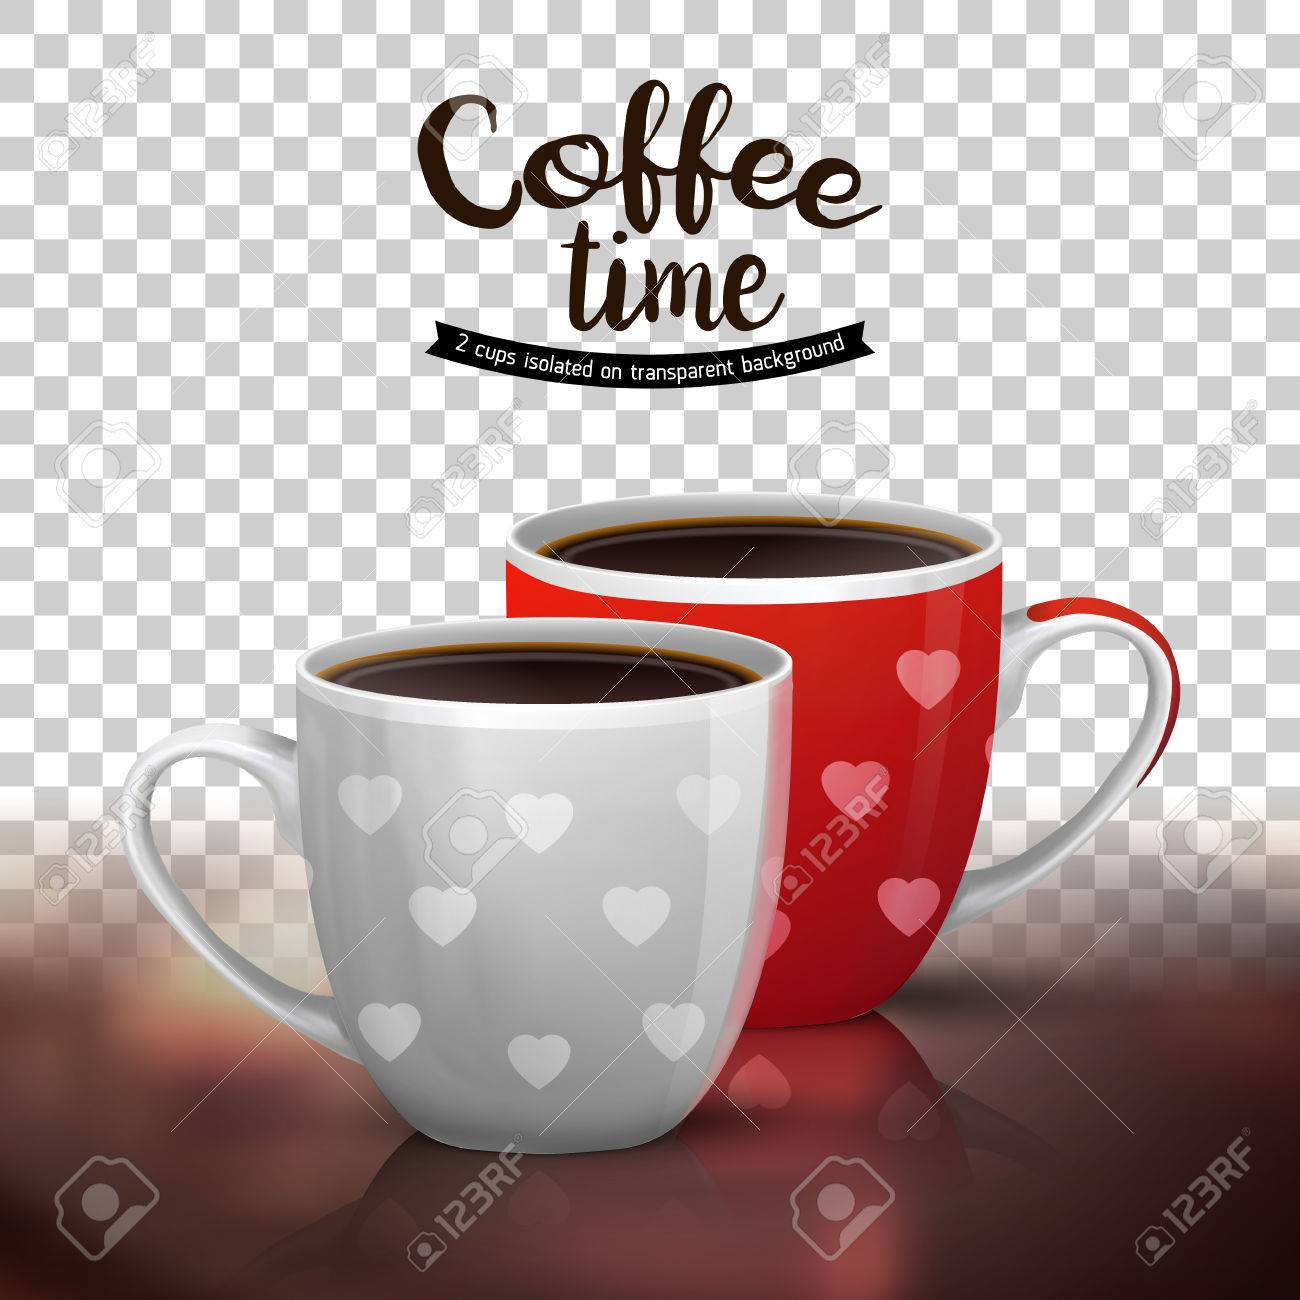 Coffee cup transparent - Classic Americano In Two Ceramic Cups Isolated On Transparent Background Illustration Of Coffee Drinks